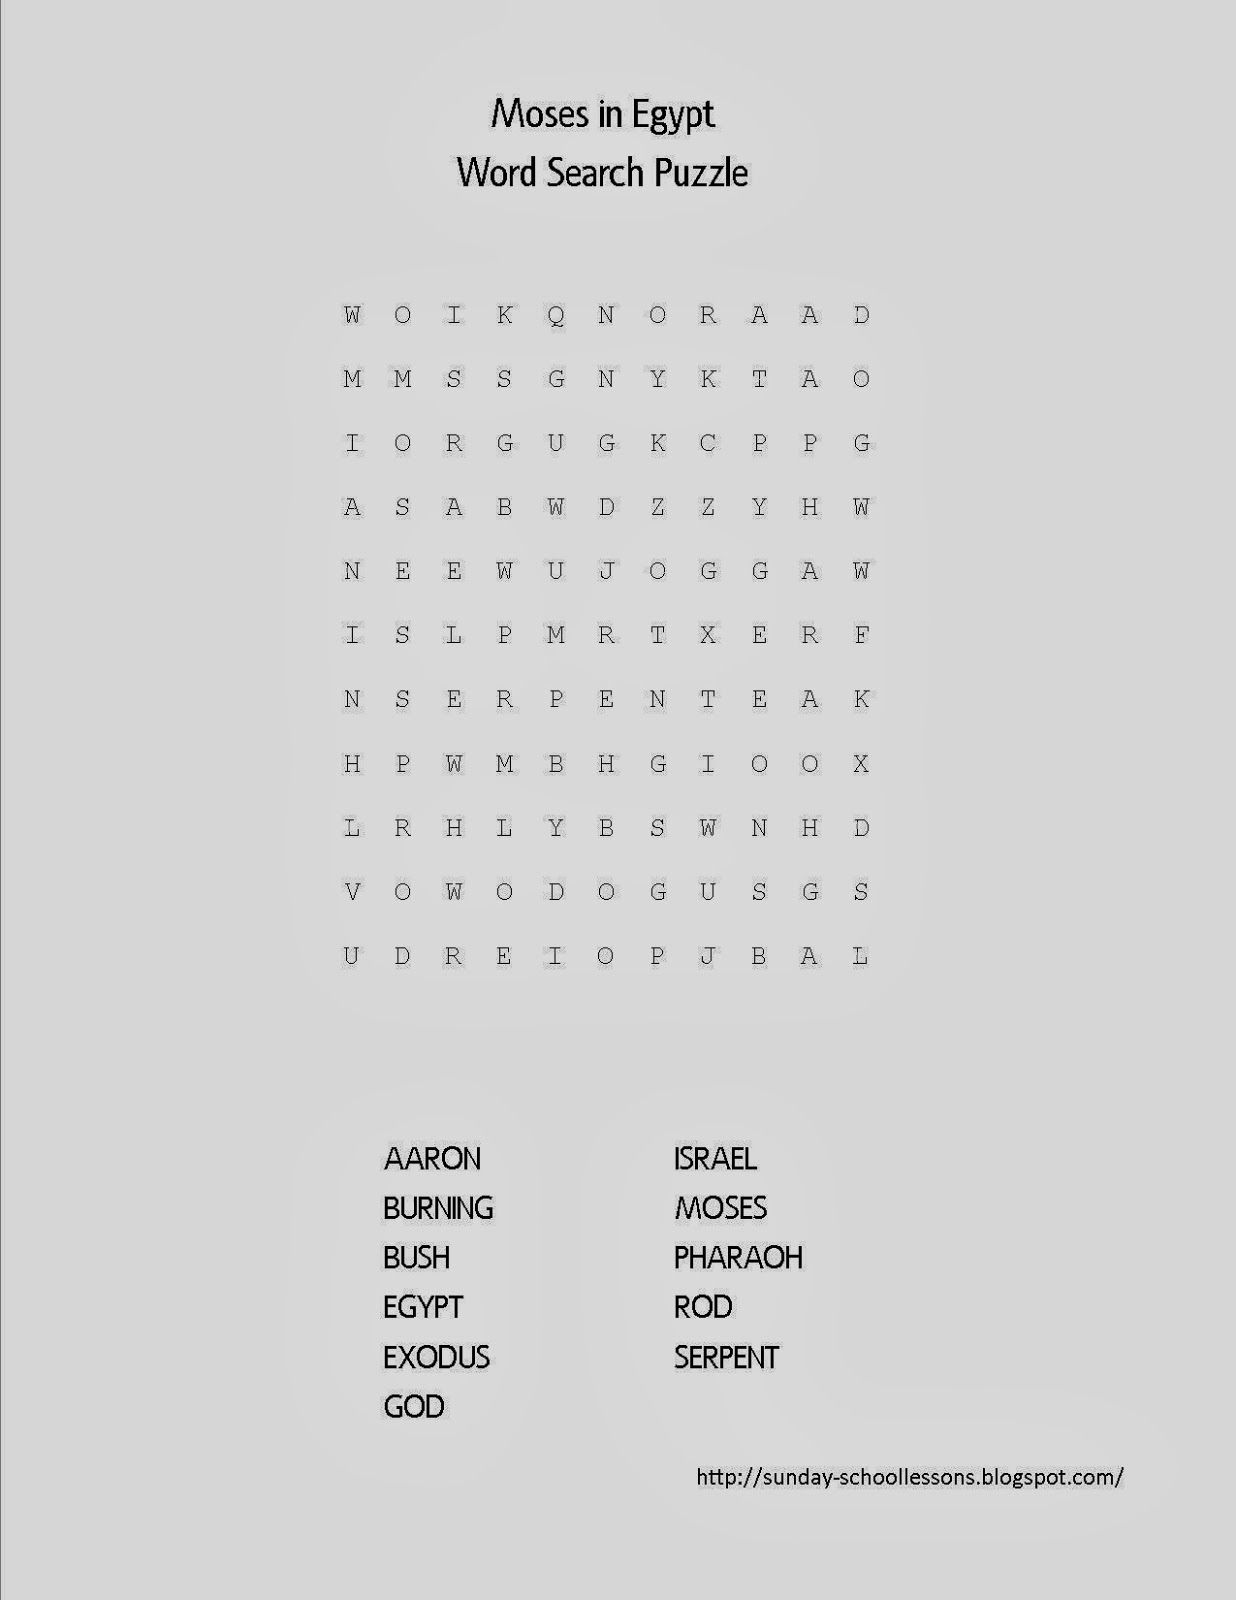 Moses in Egypt Word Search Puzzle - FREE Sunday School